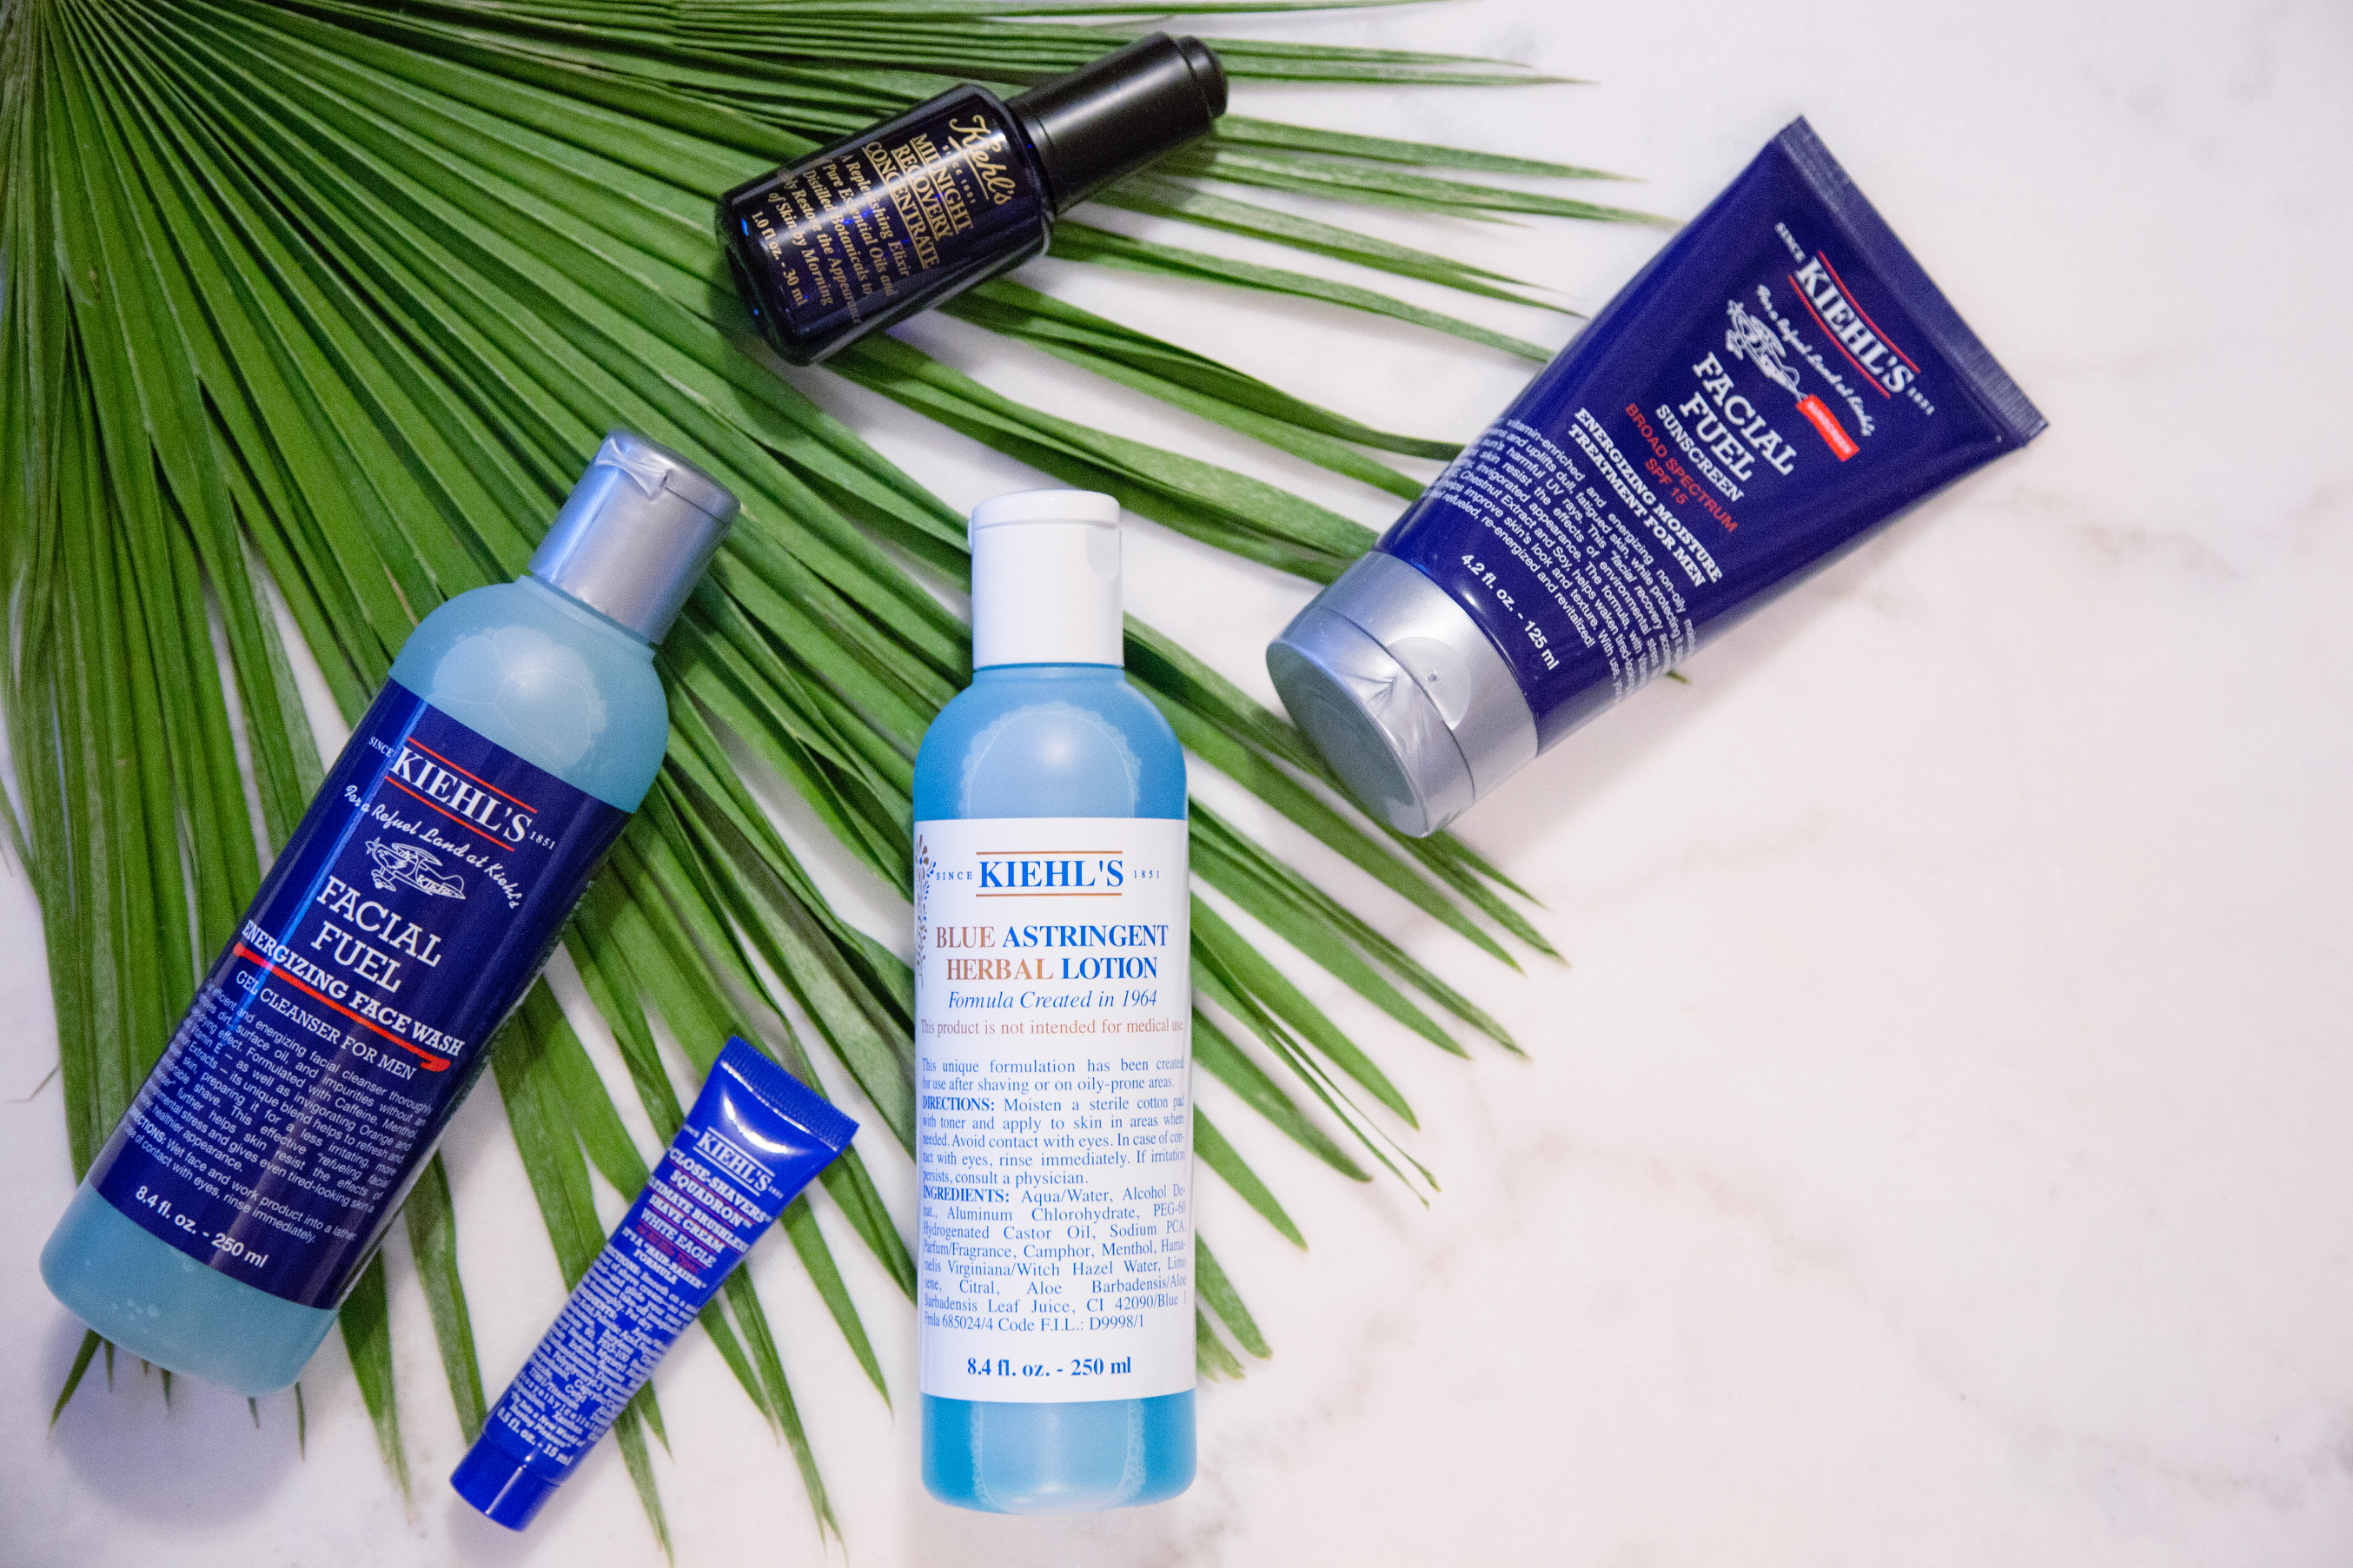 Kiehls Products